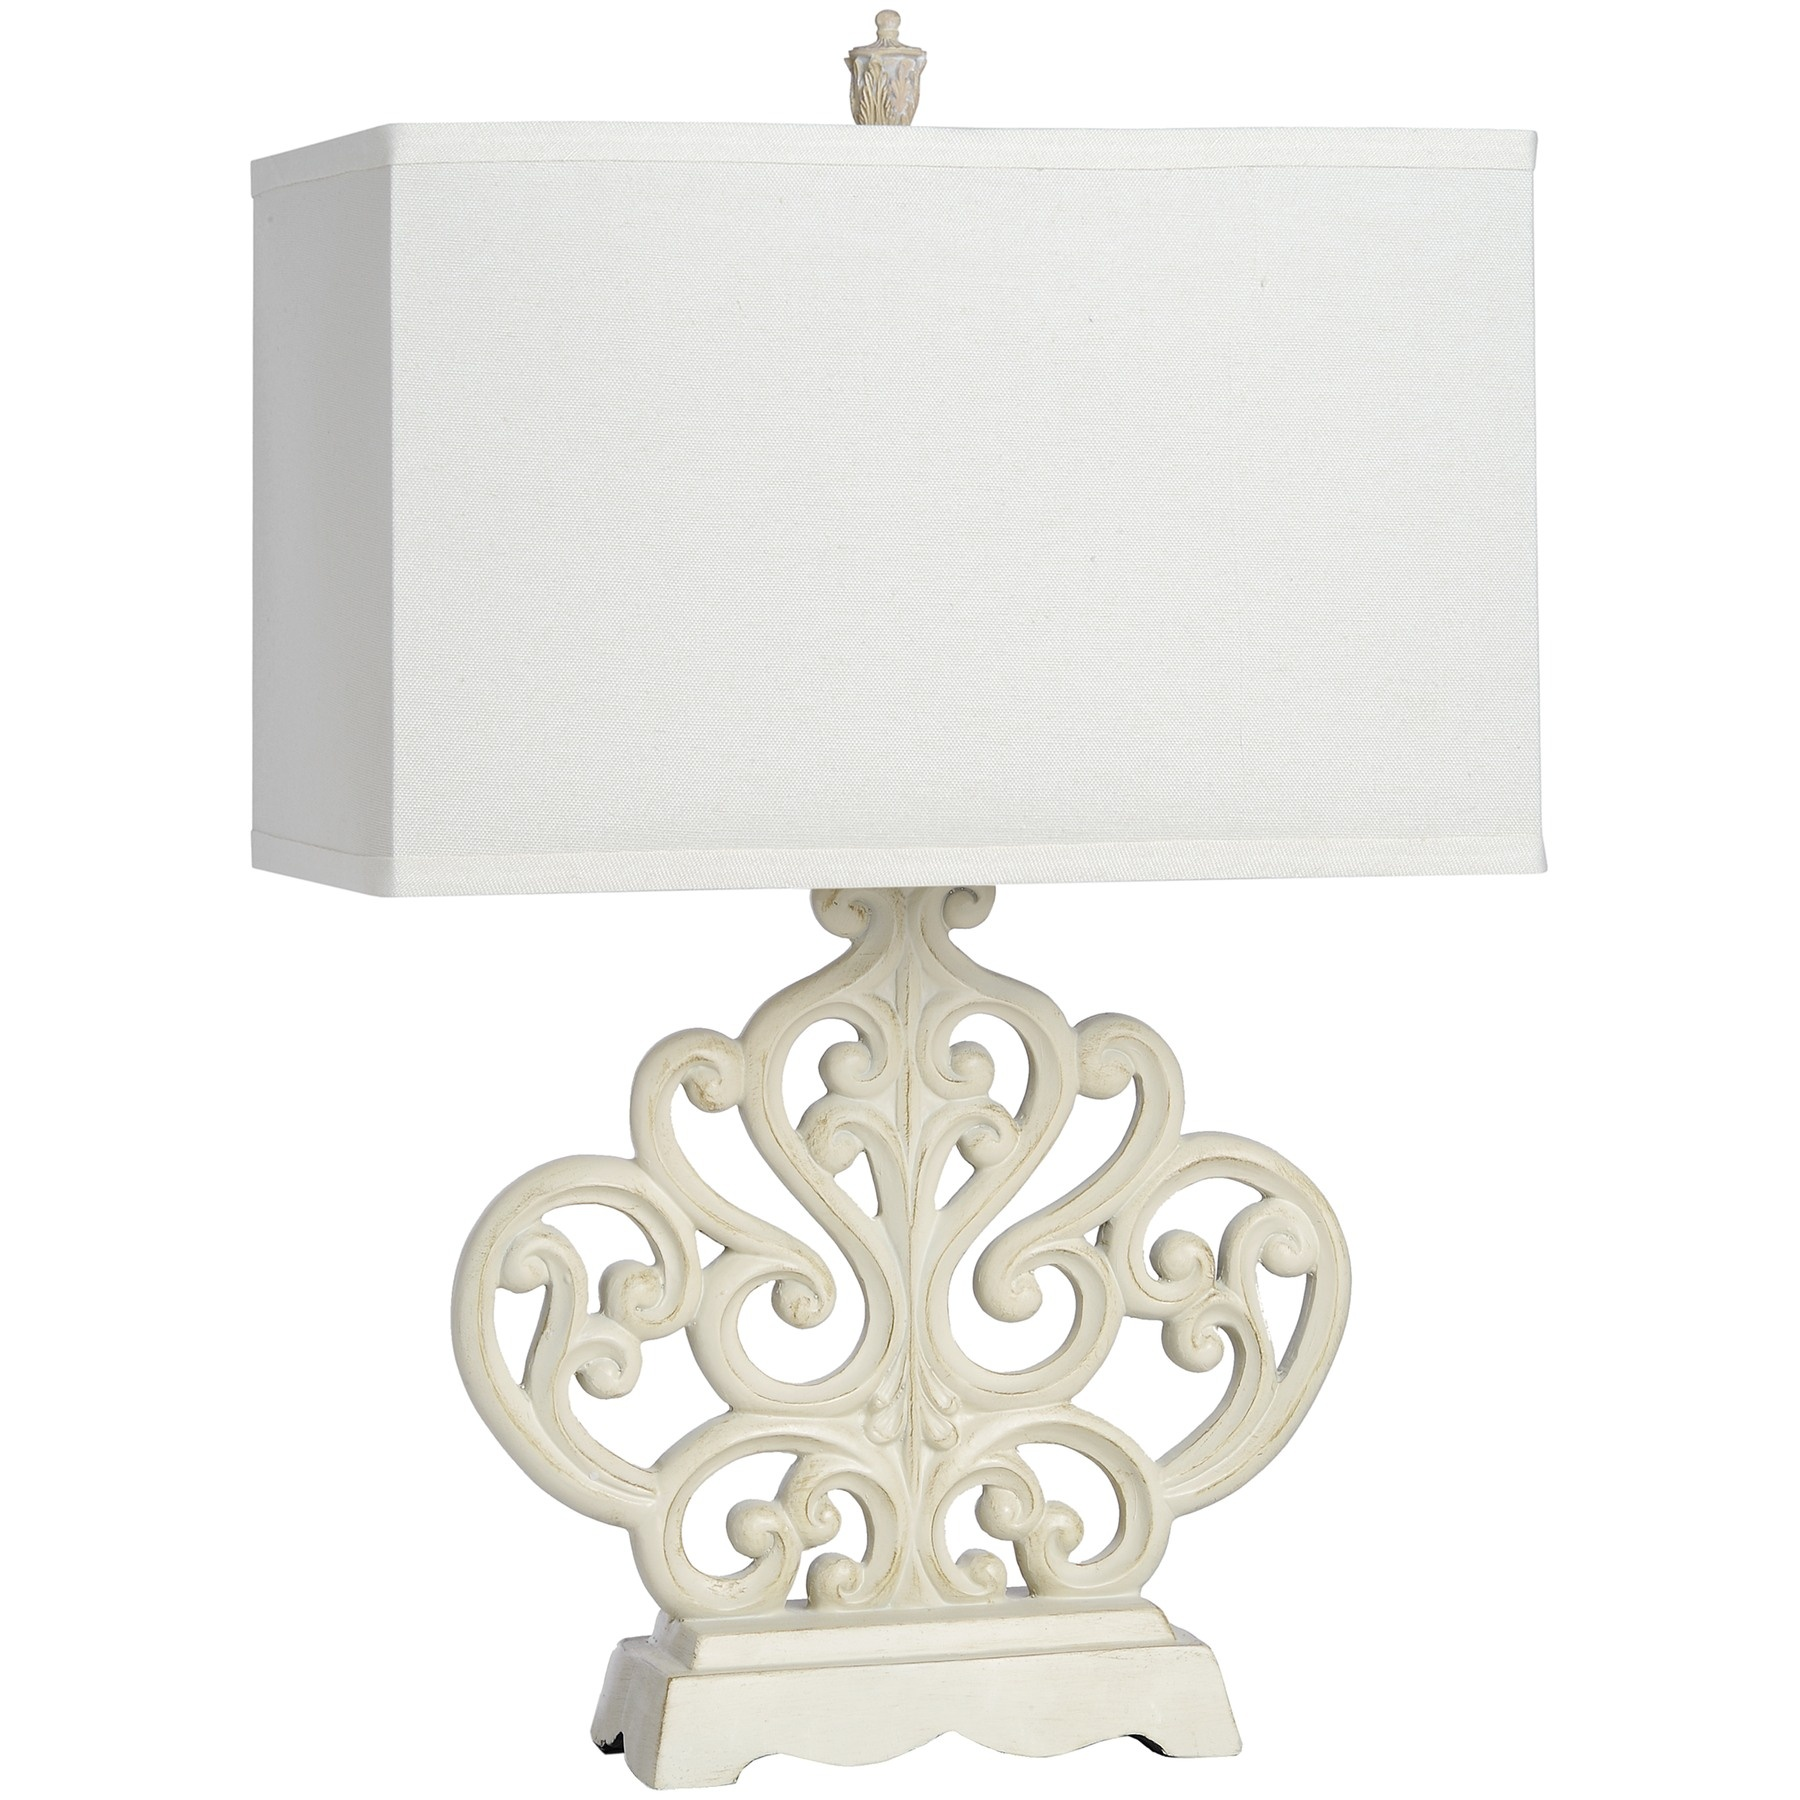 Buy French Country Table Lamp, Rectangular | Swanky Interiors